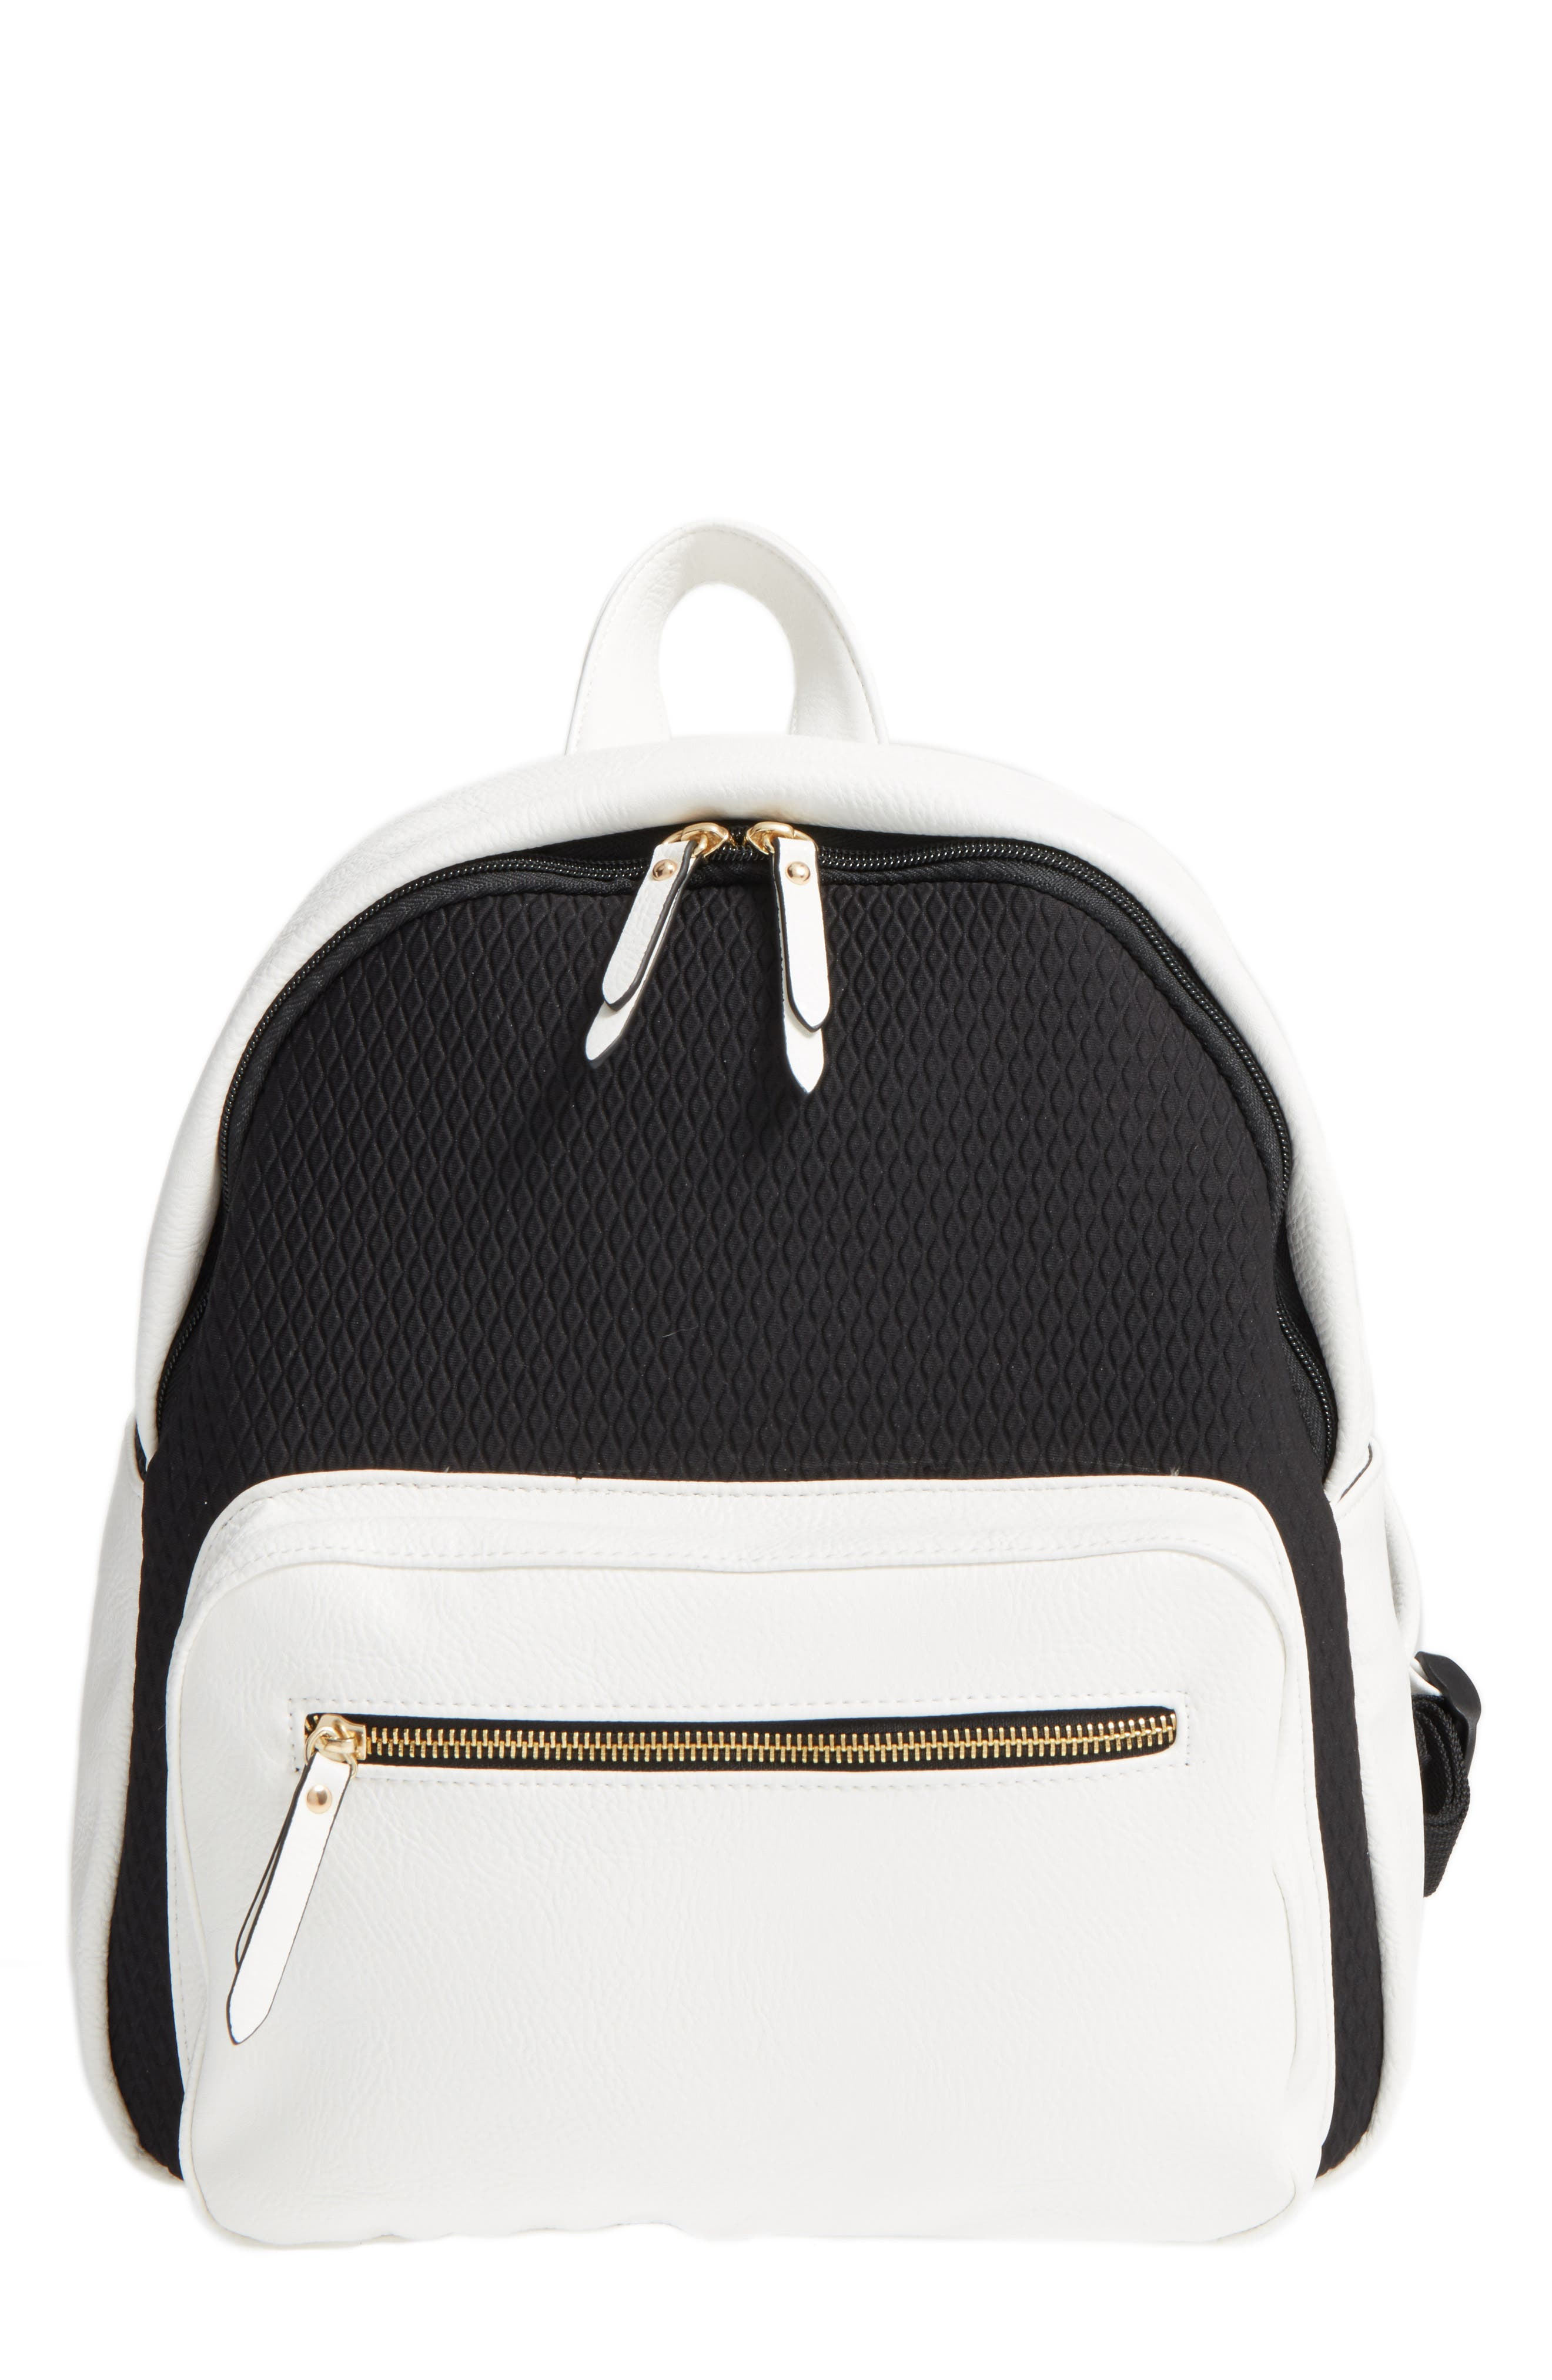 Main Image - POVERTY FLATS by rian Faux Leather & Neoprene Backpack